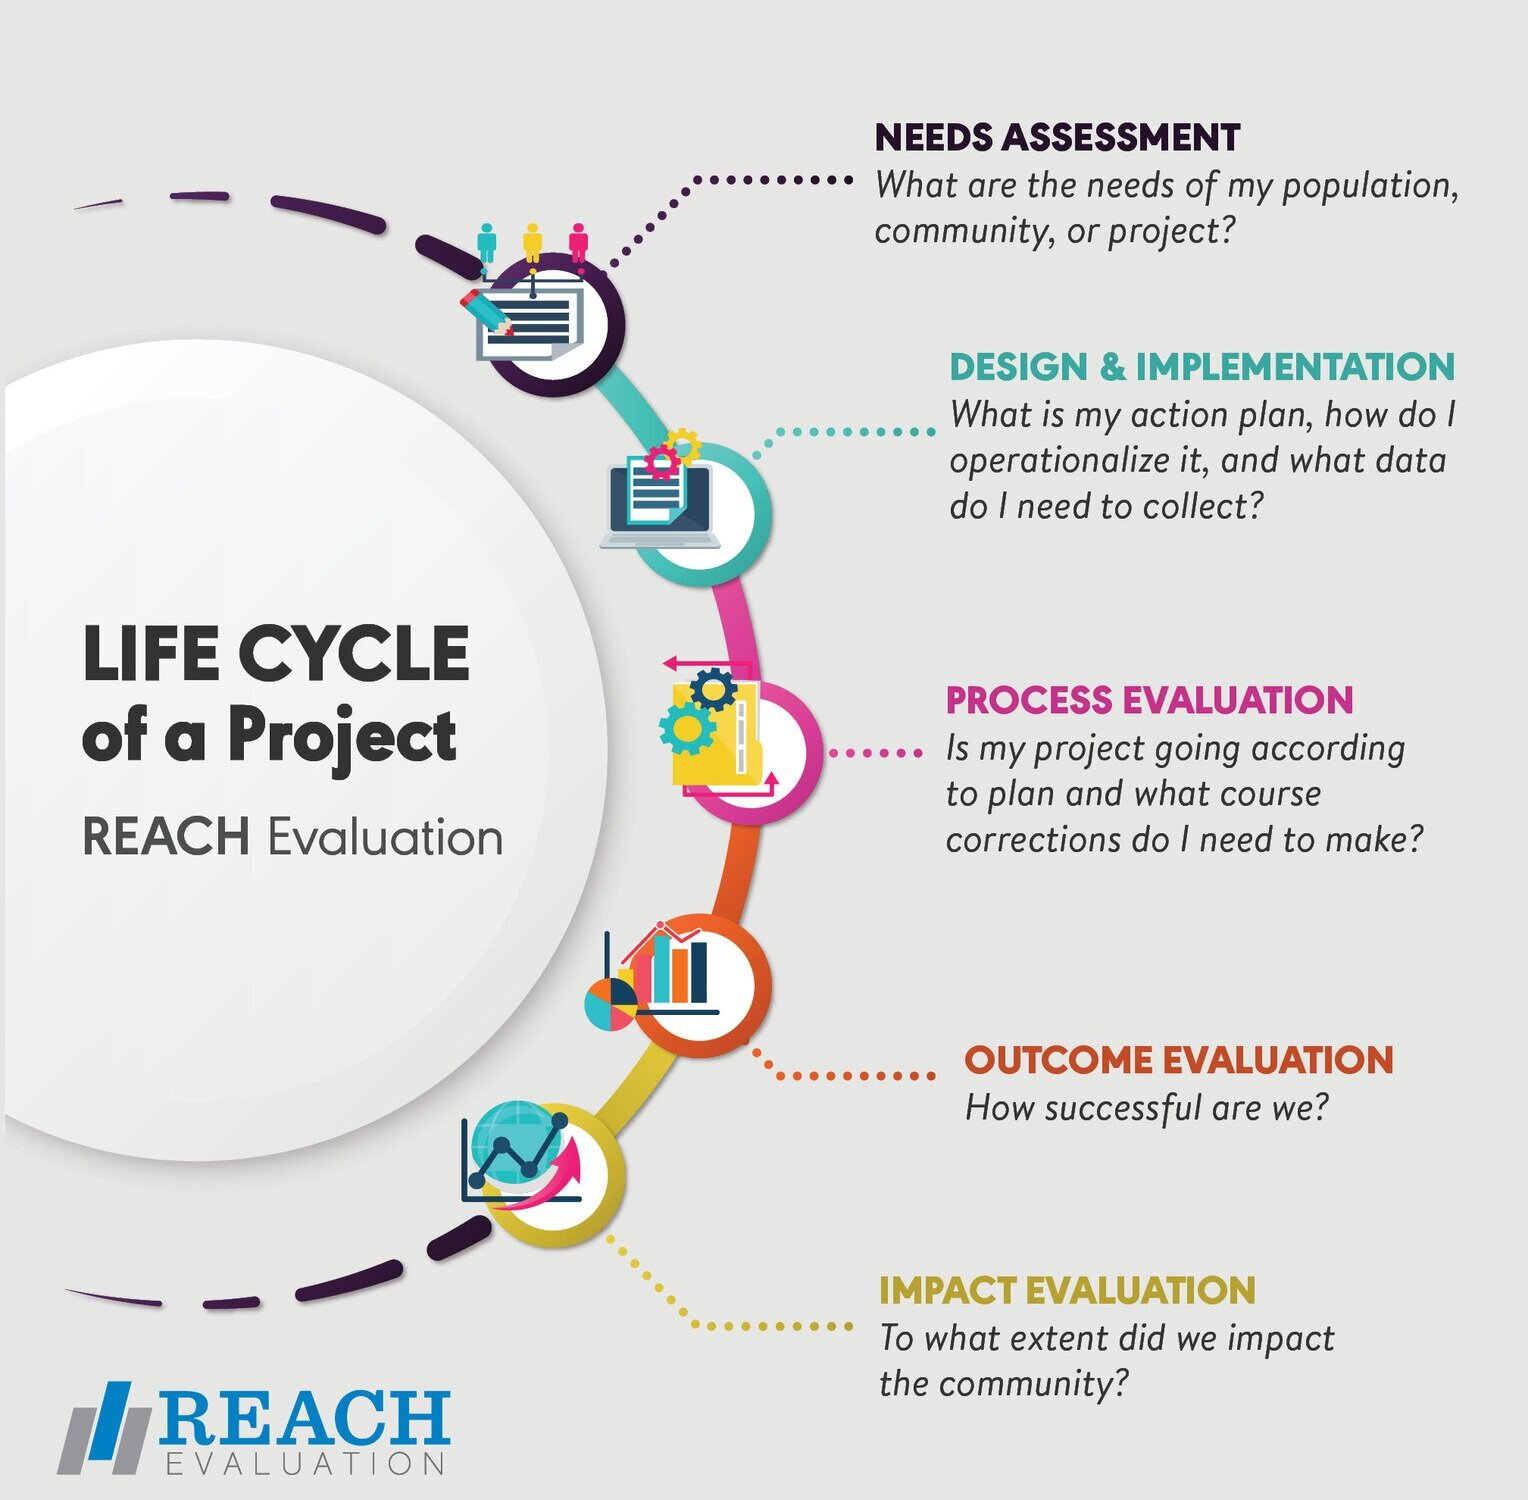 Life+Cycle+of+a+Project-v3-jpg.jpg